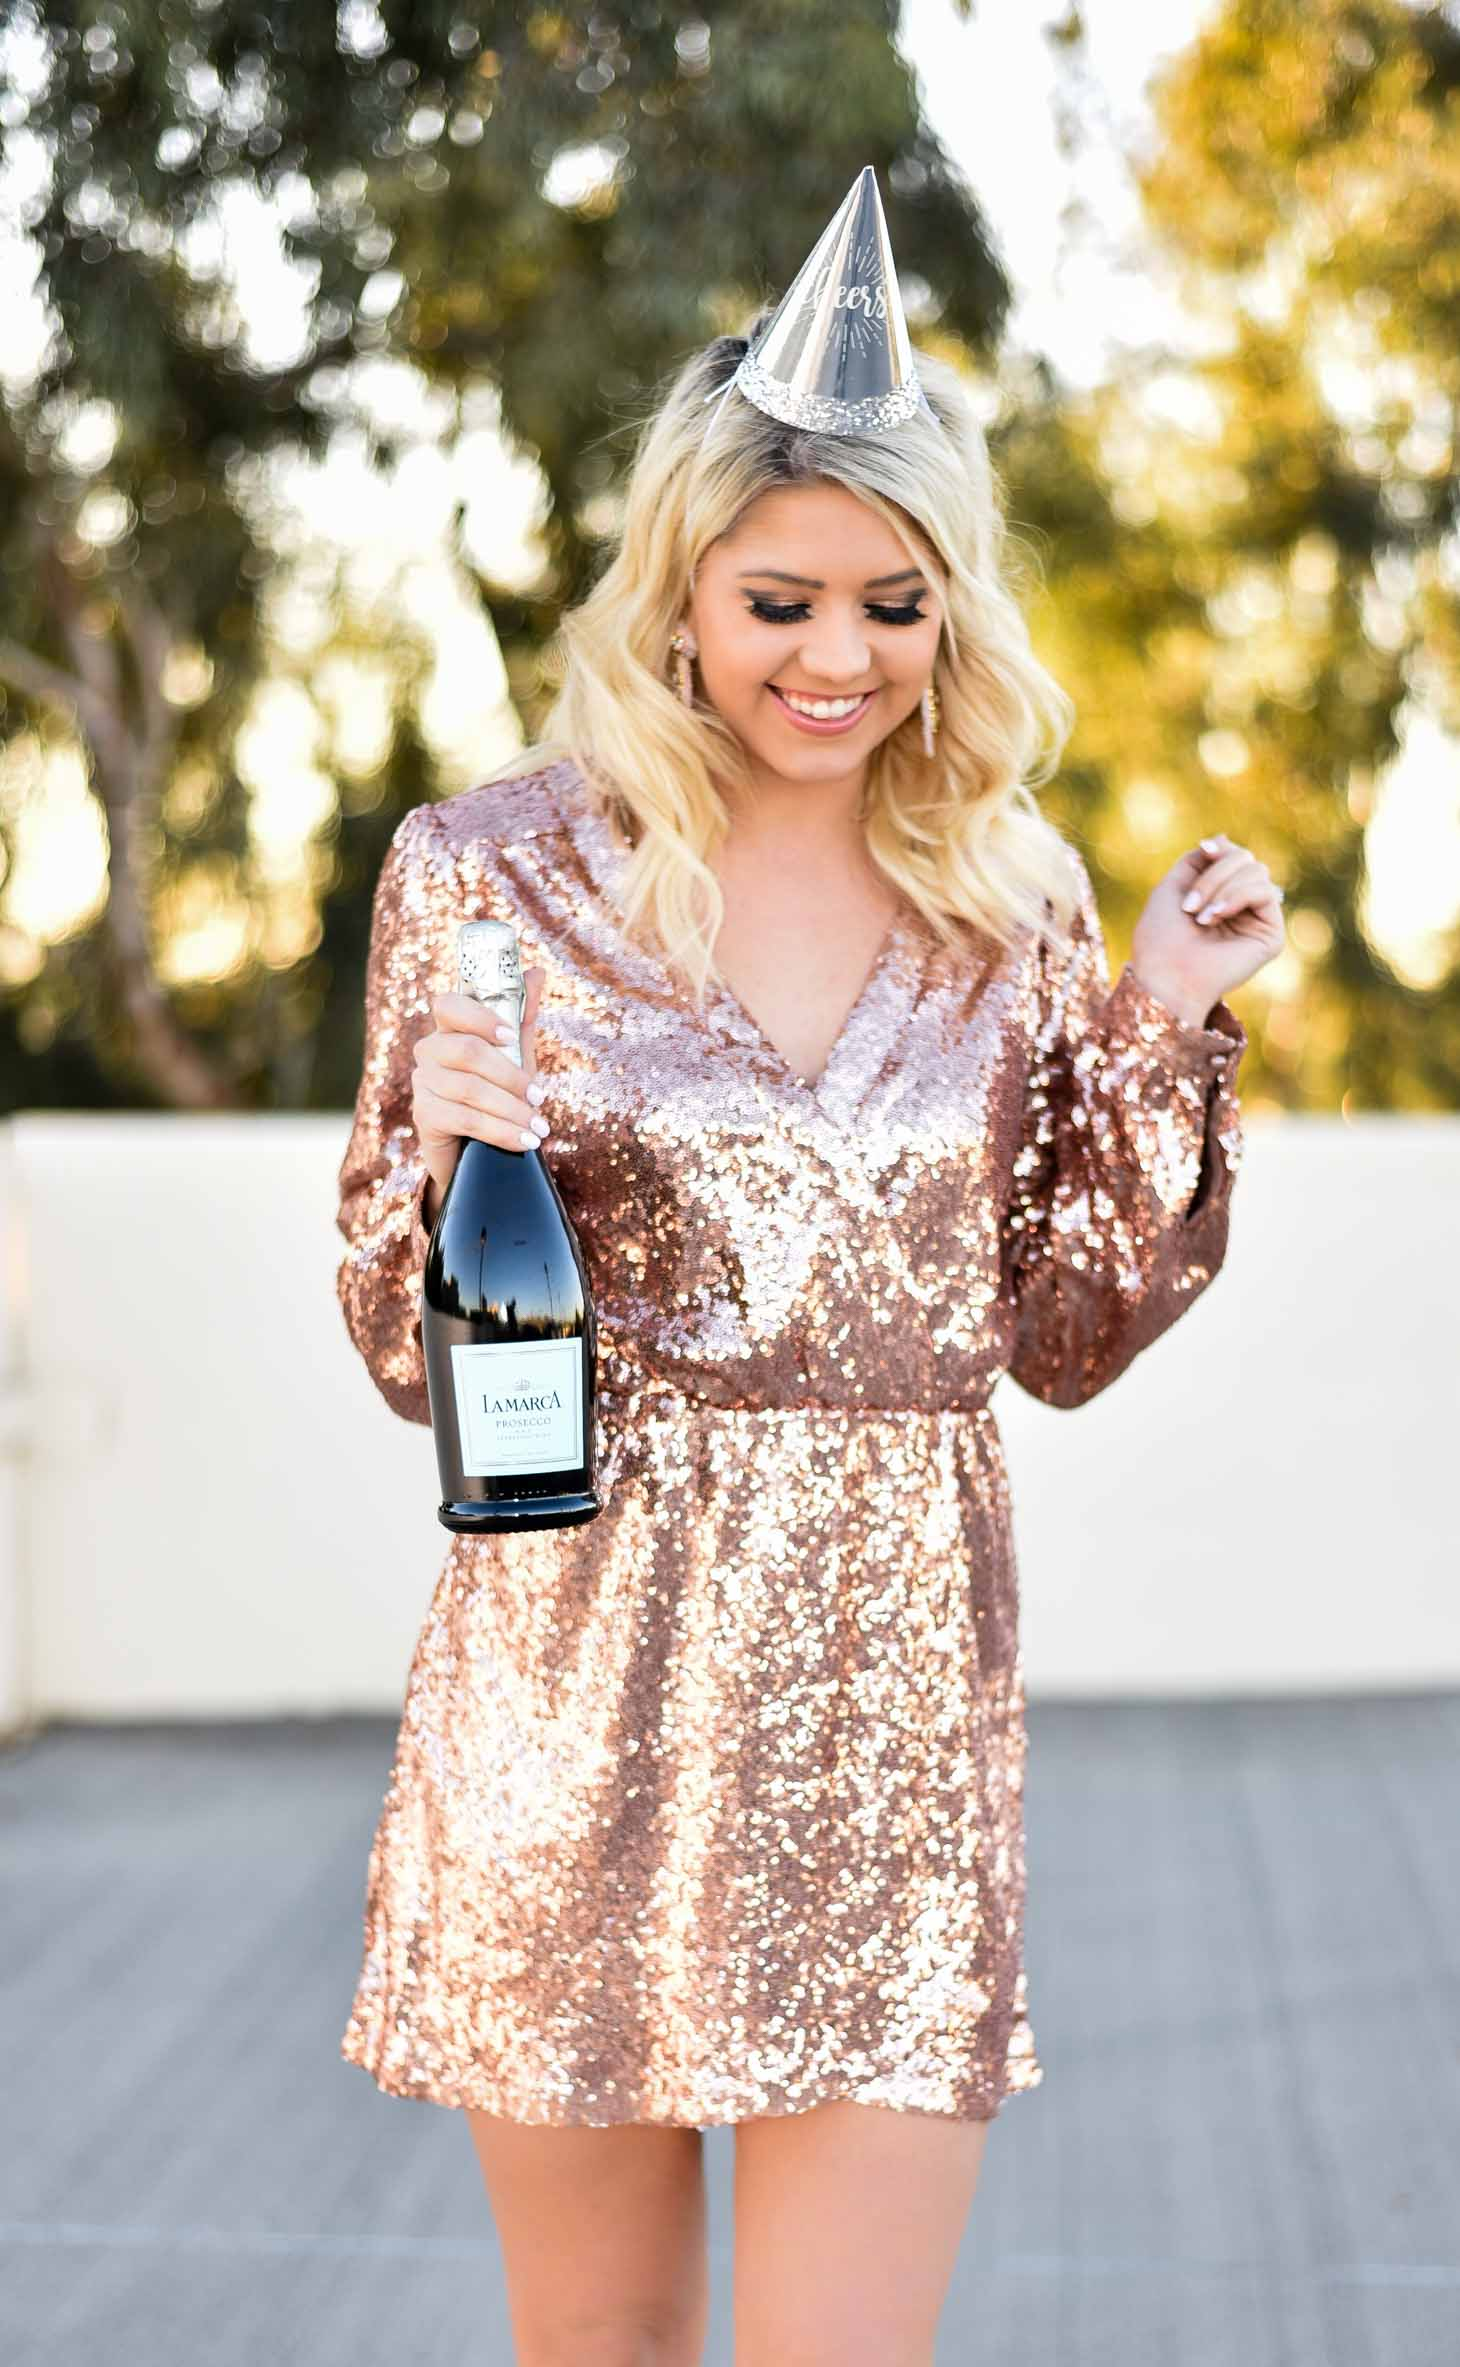 Erin Elizabeth of Wink and a Twirl in New Year's Eve Look